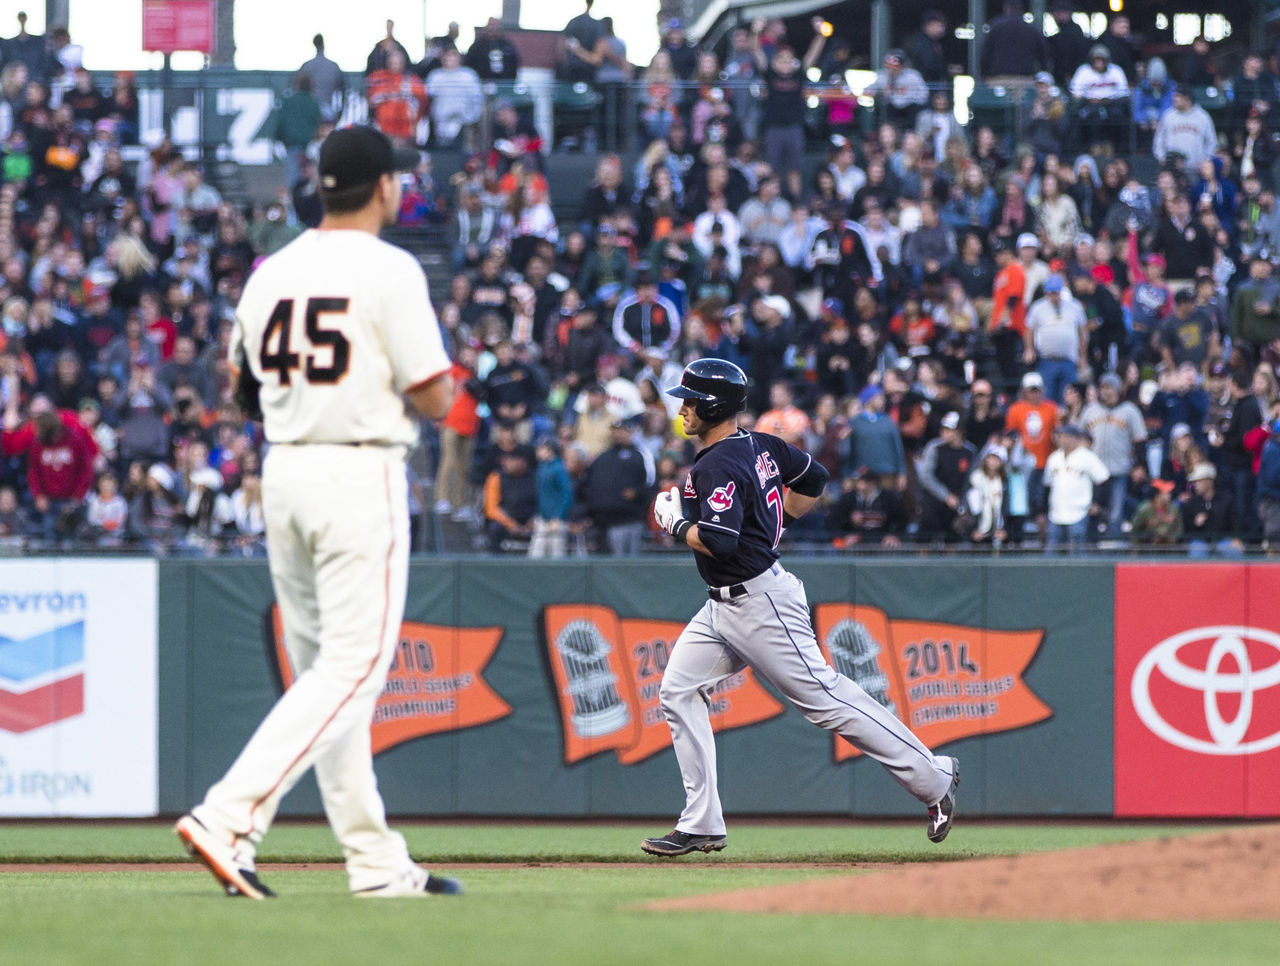 Giants' sellout streak ends at 530 consecutive home games